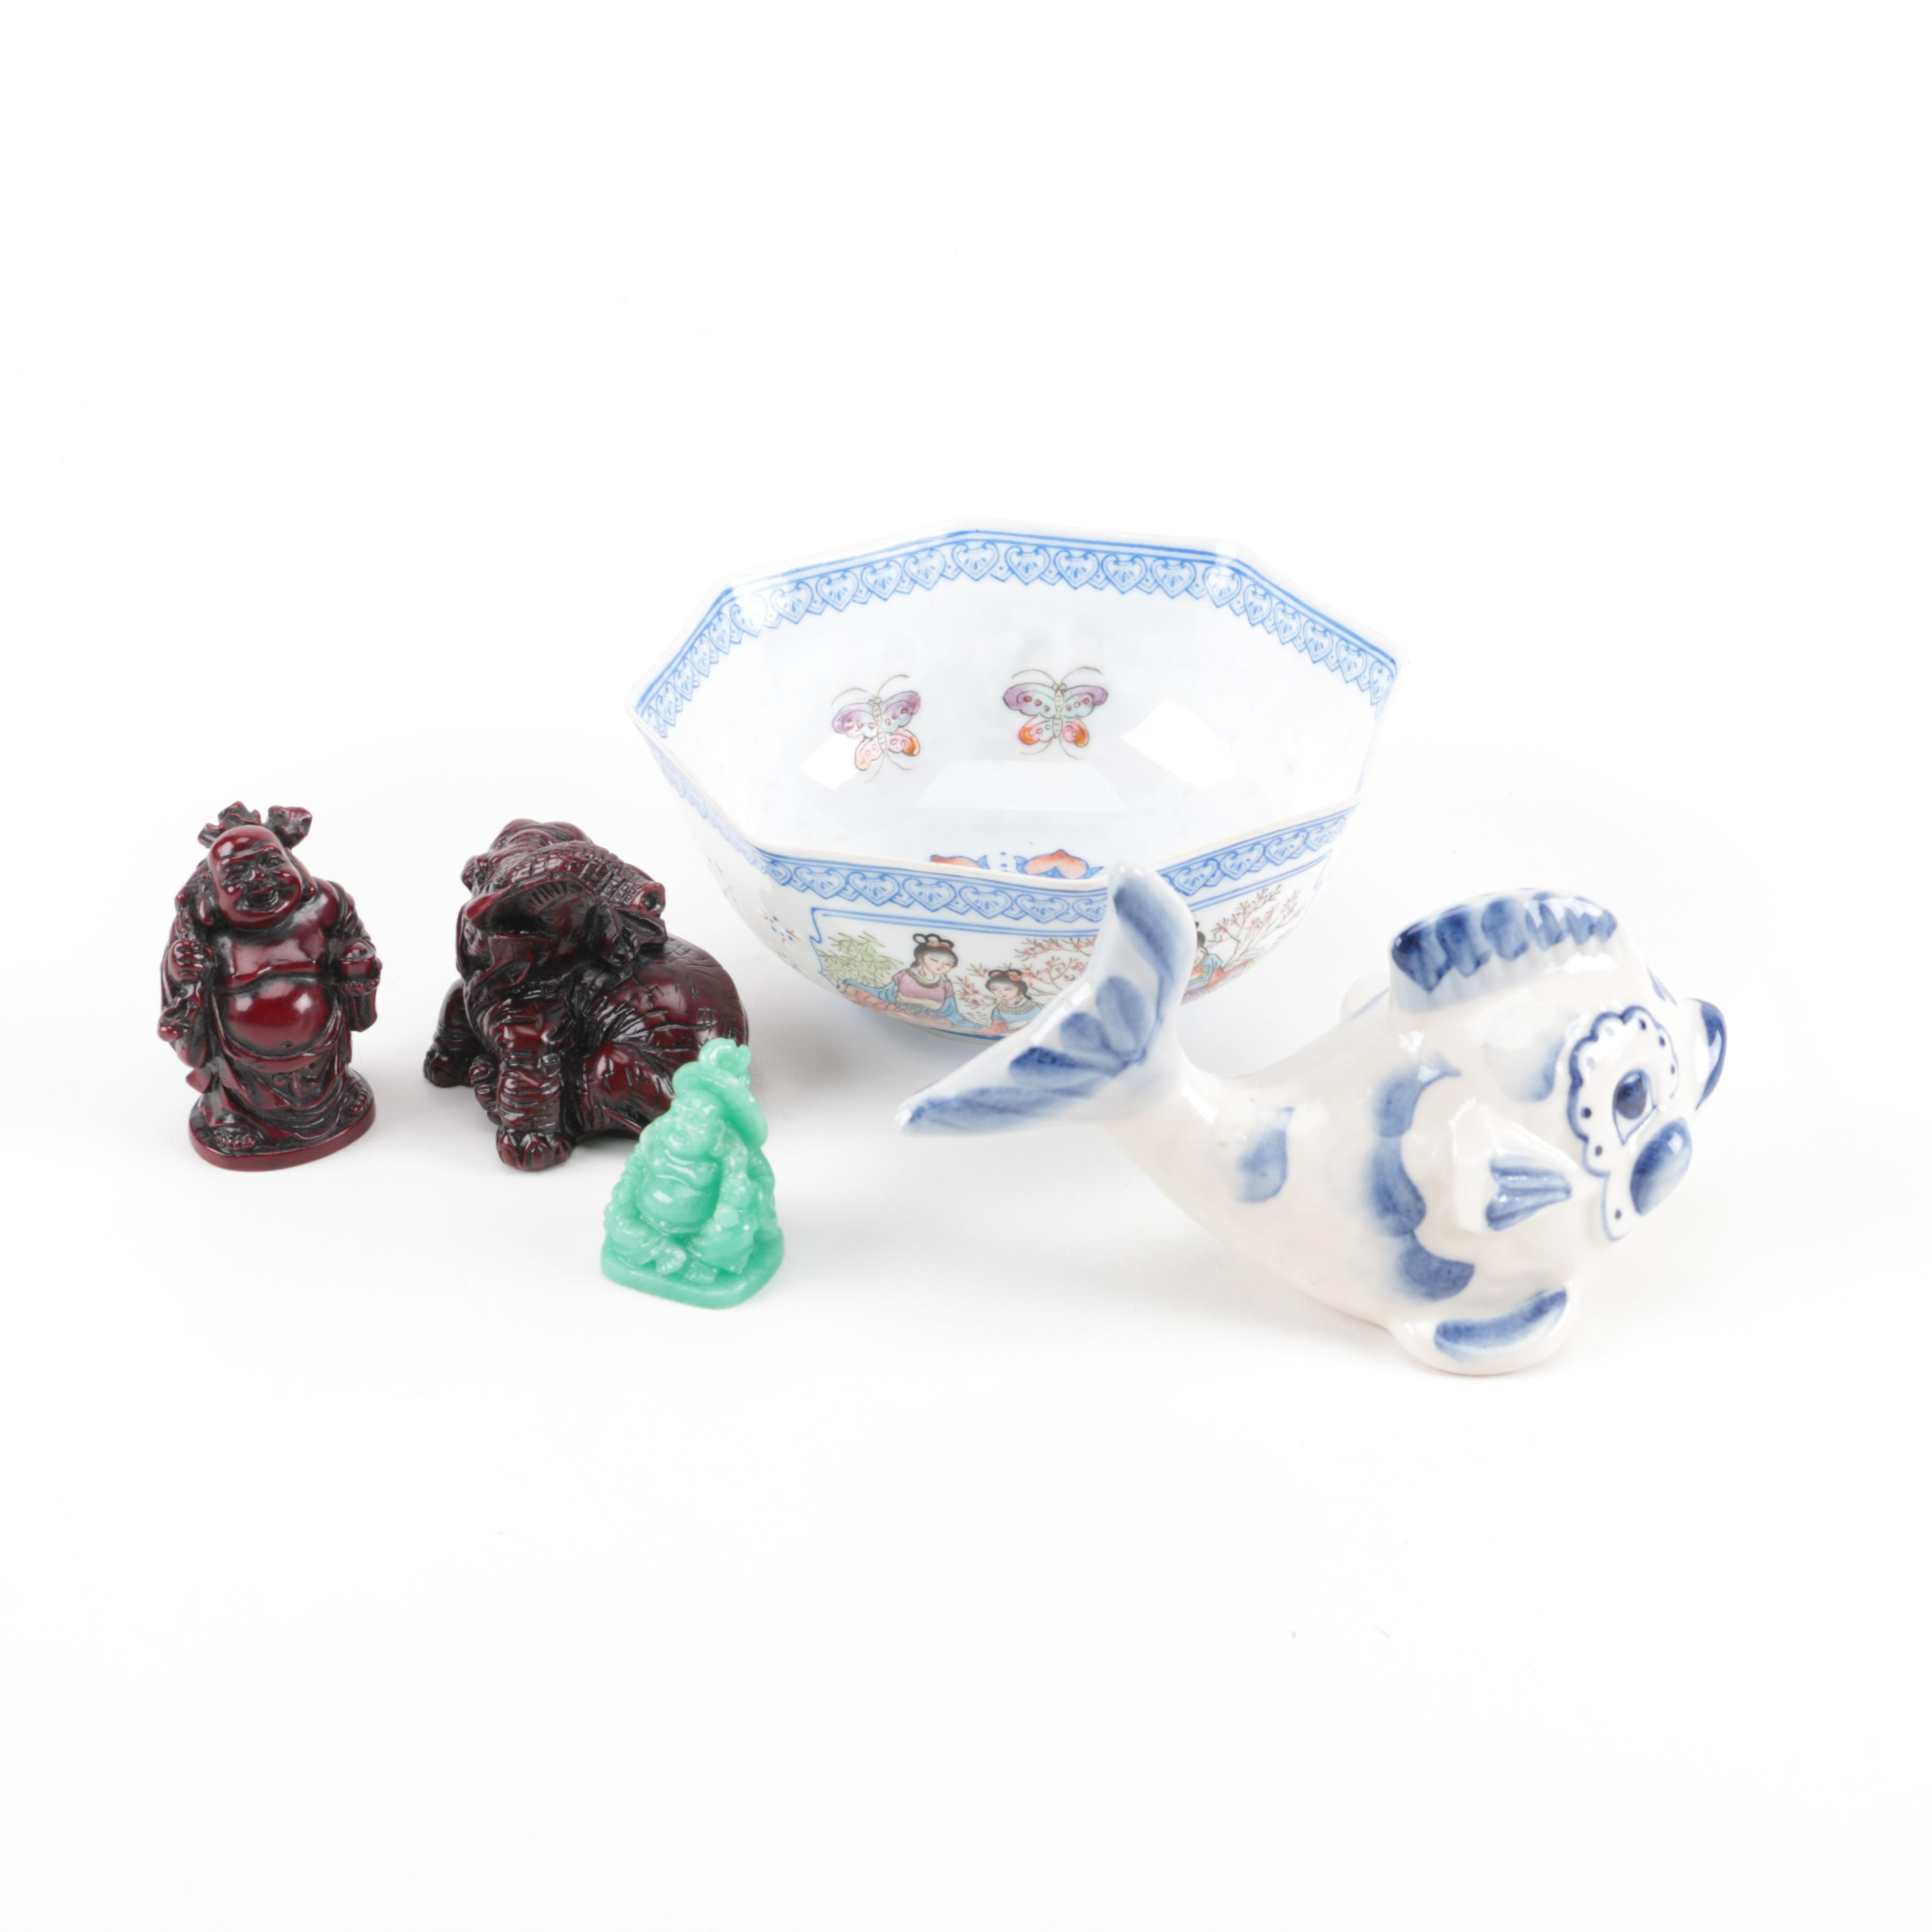 Assortment of East Asian Inspired Ceramic and Resin Figurines